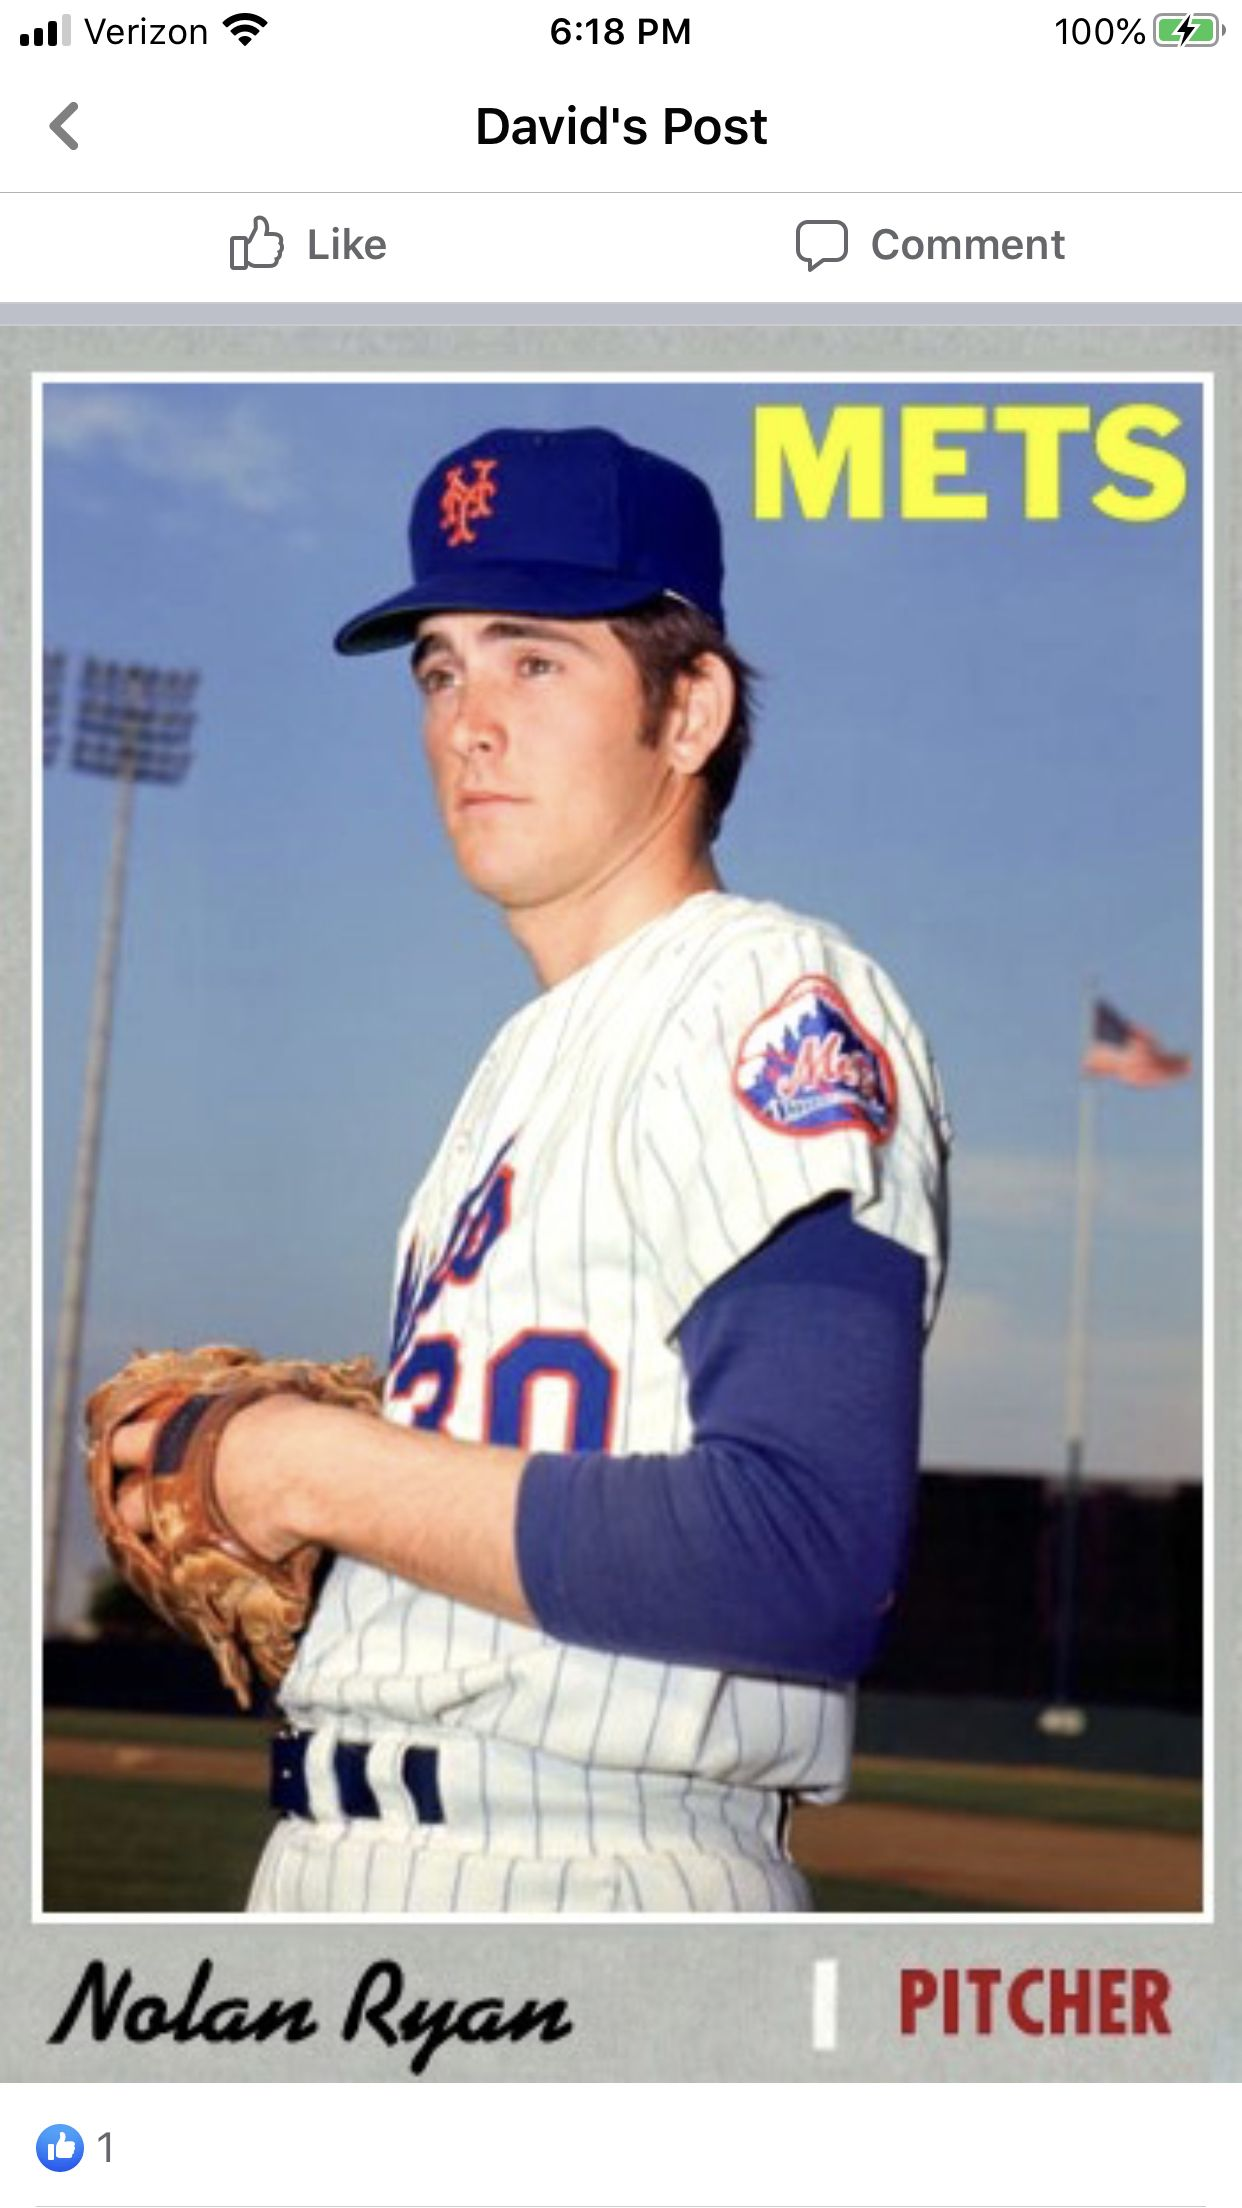 Pin by Maynman on 1970 new york mets cards in 2020 New